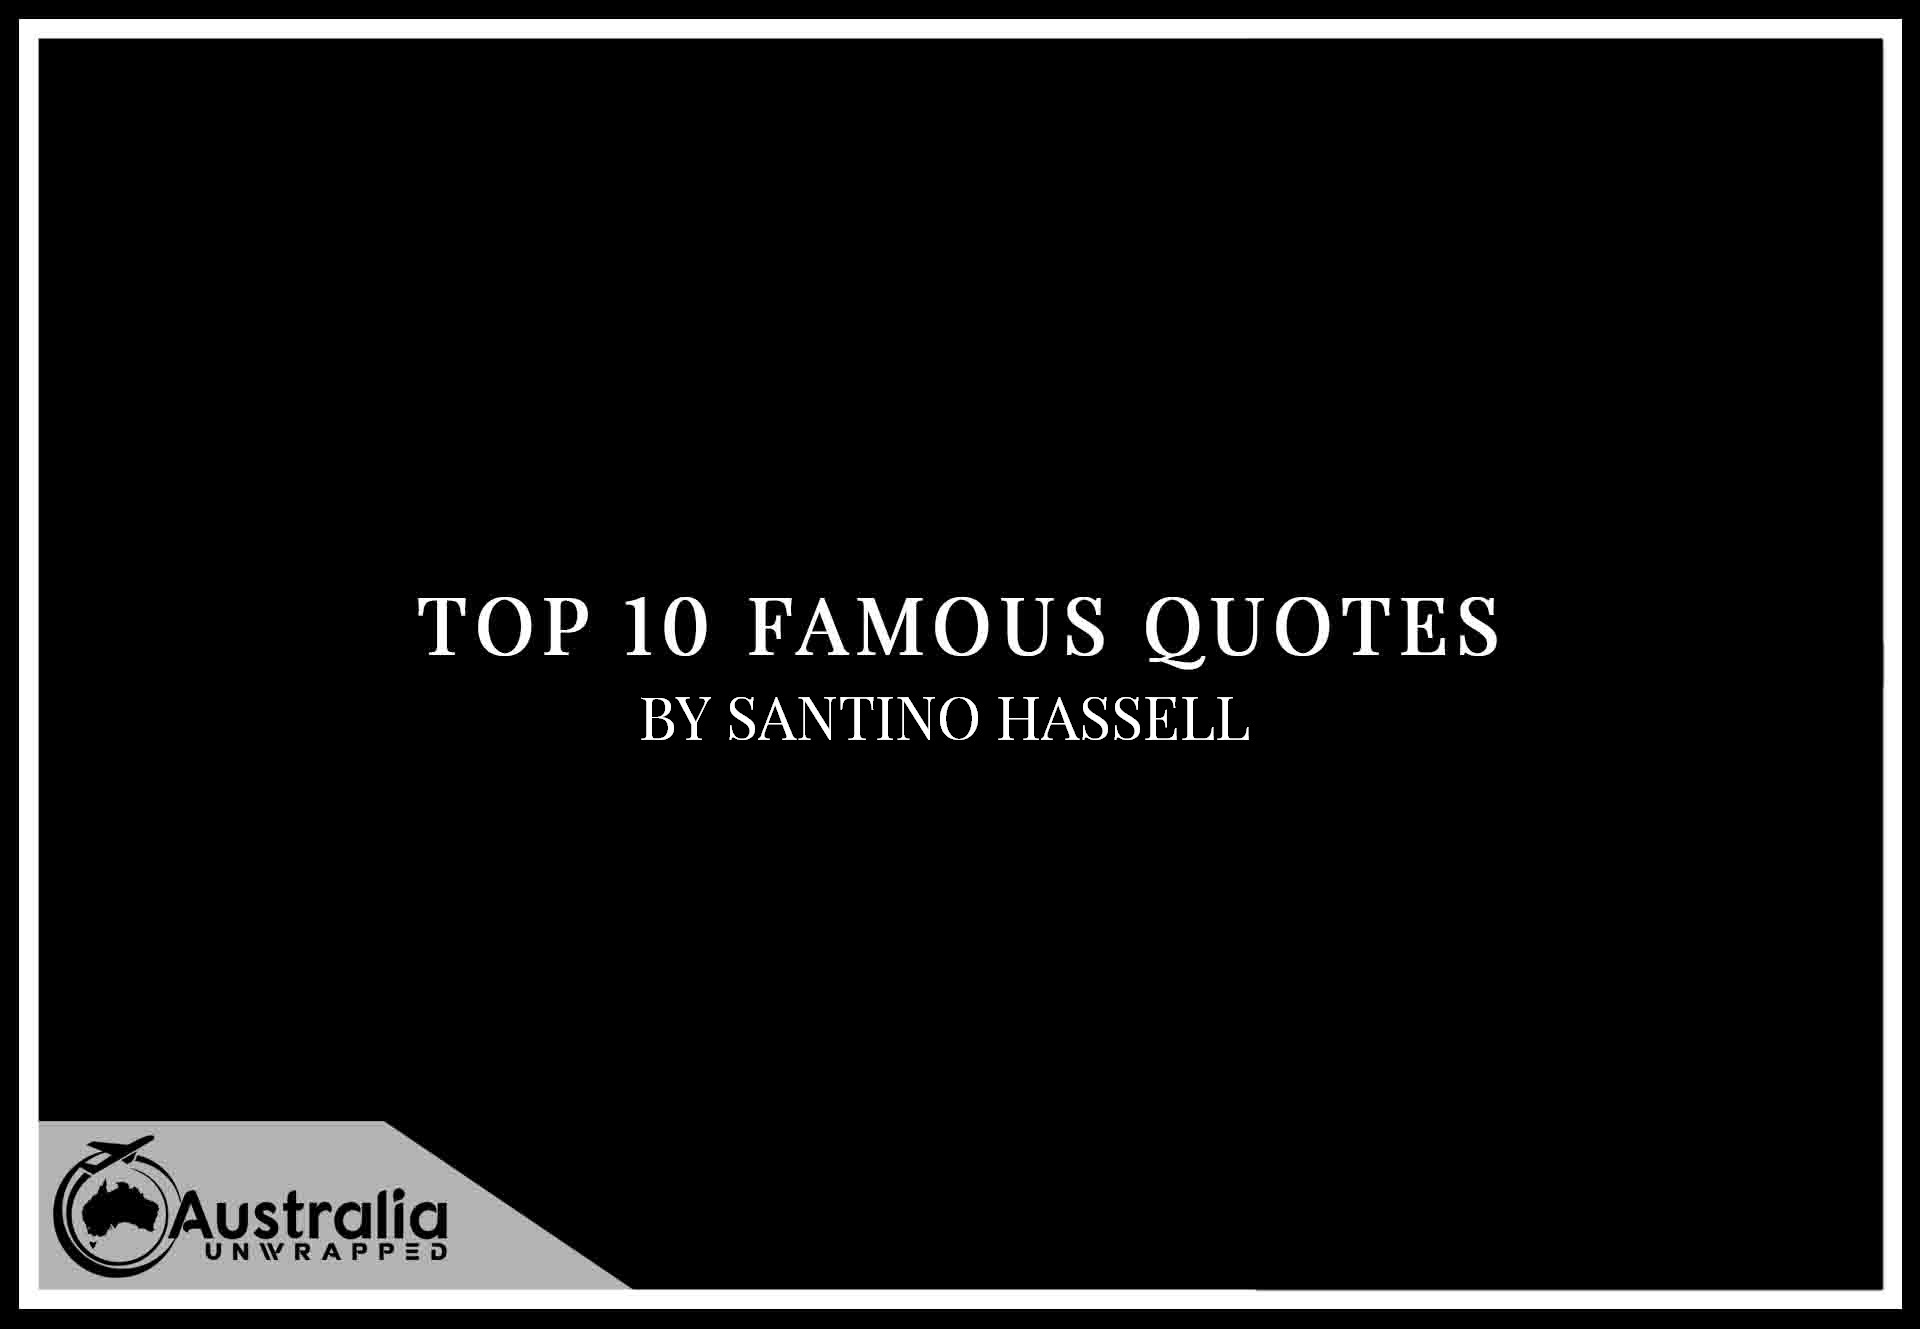 Top 10 Famous Quotes by Author Sonny Hassell